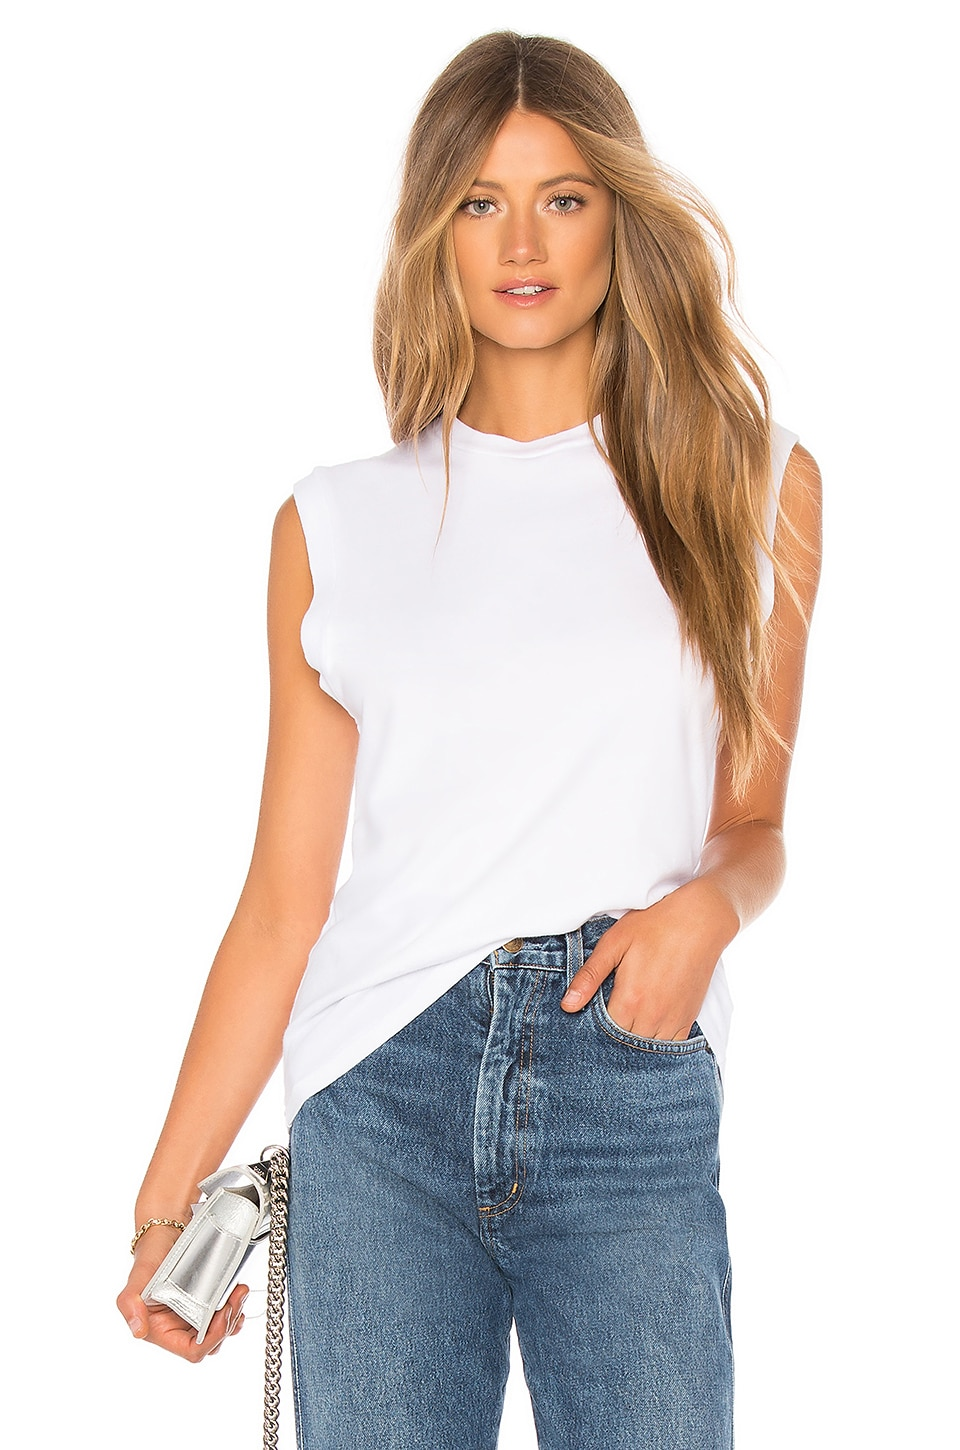 Muscle Tee             AGOLDE                                                                                                                                         Sale price:                                                                       CA$ 48.34                                                                                                  Previous price:                                                                       CA$ 82.47 11